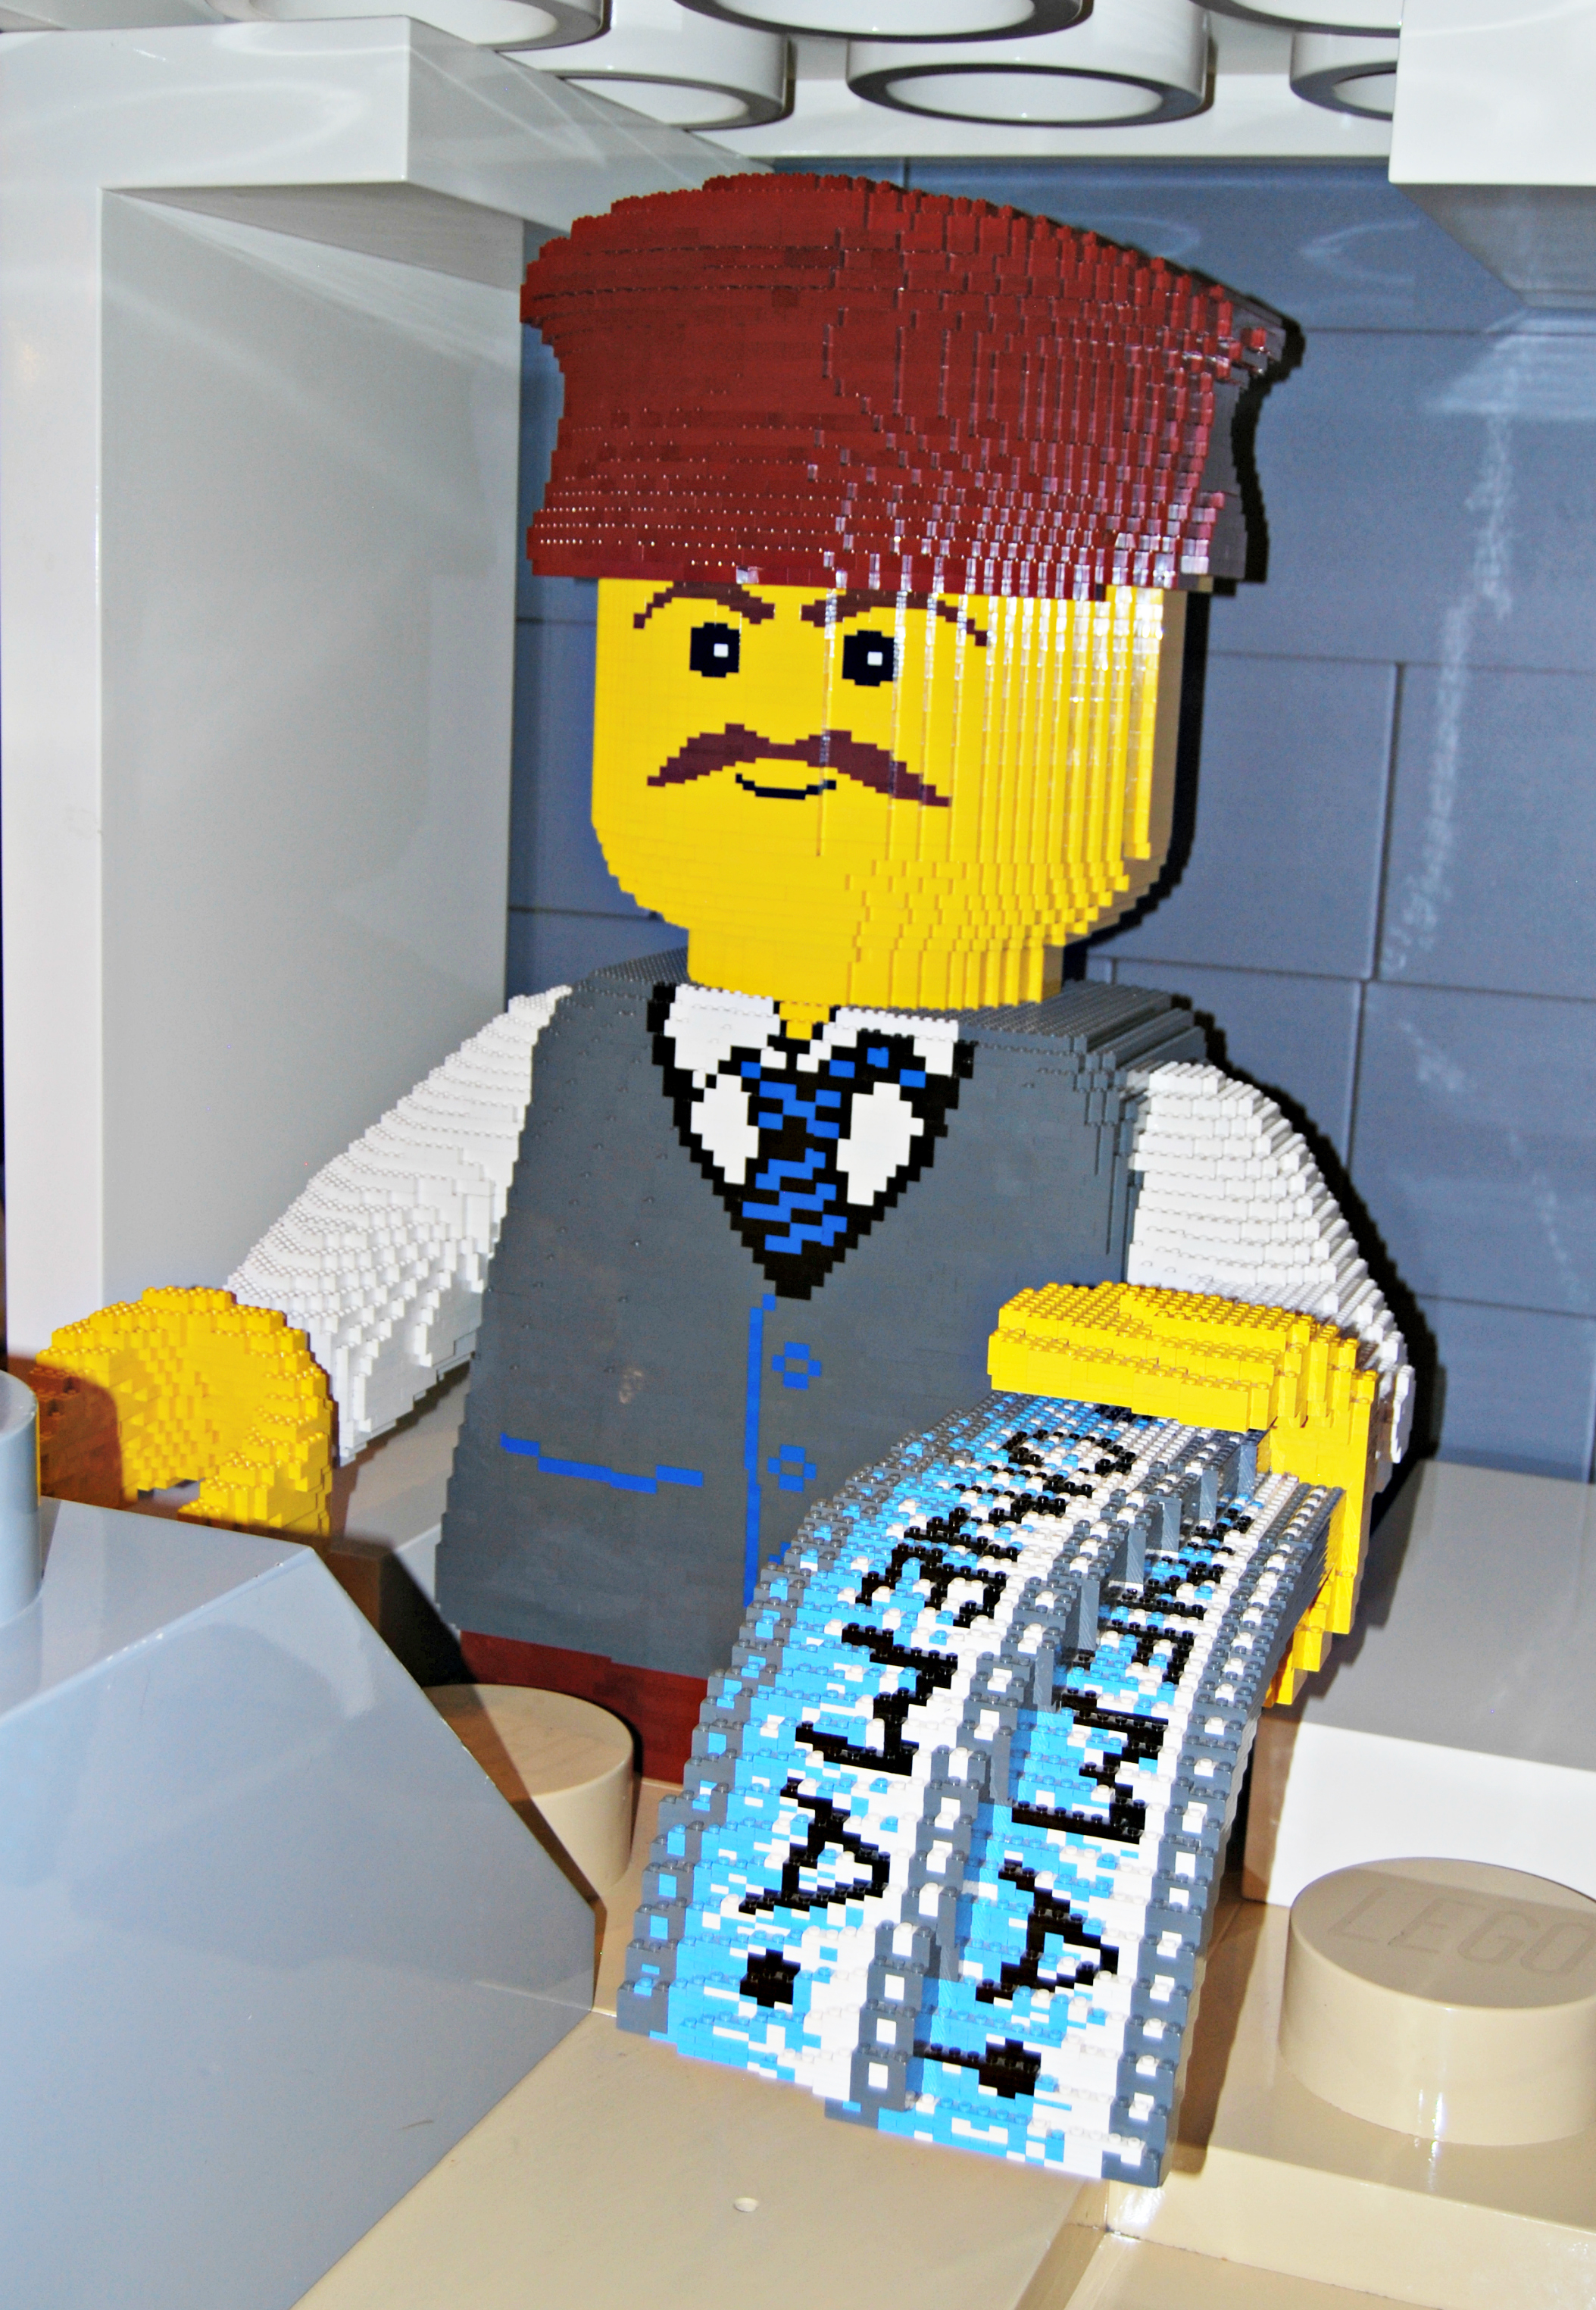 lego ticket taker are we there yet article image